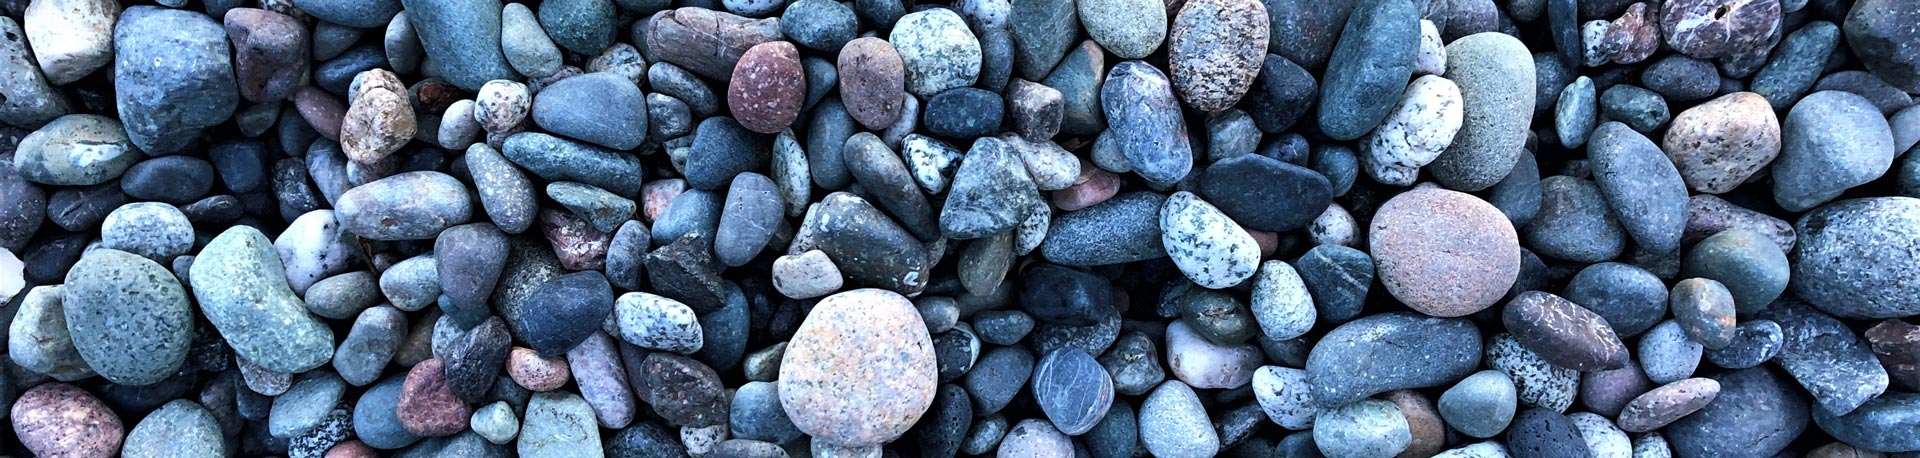 grey and red pebbles on a beach